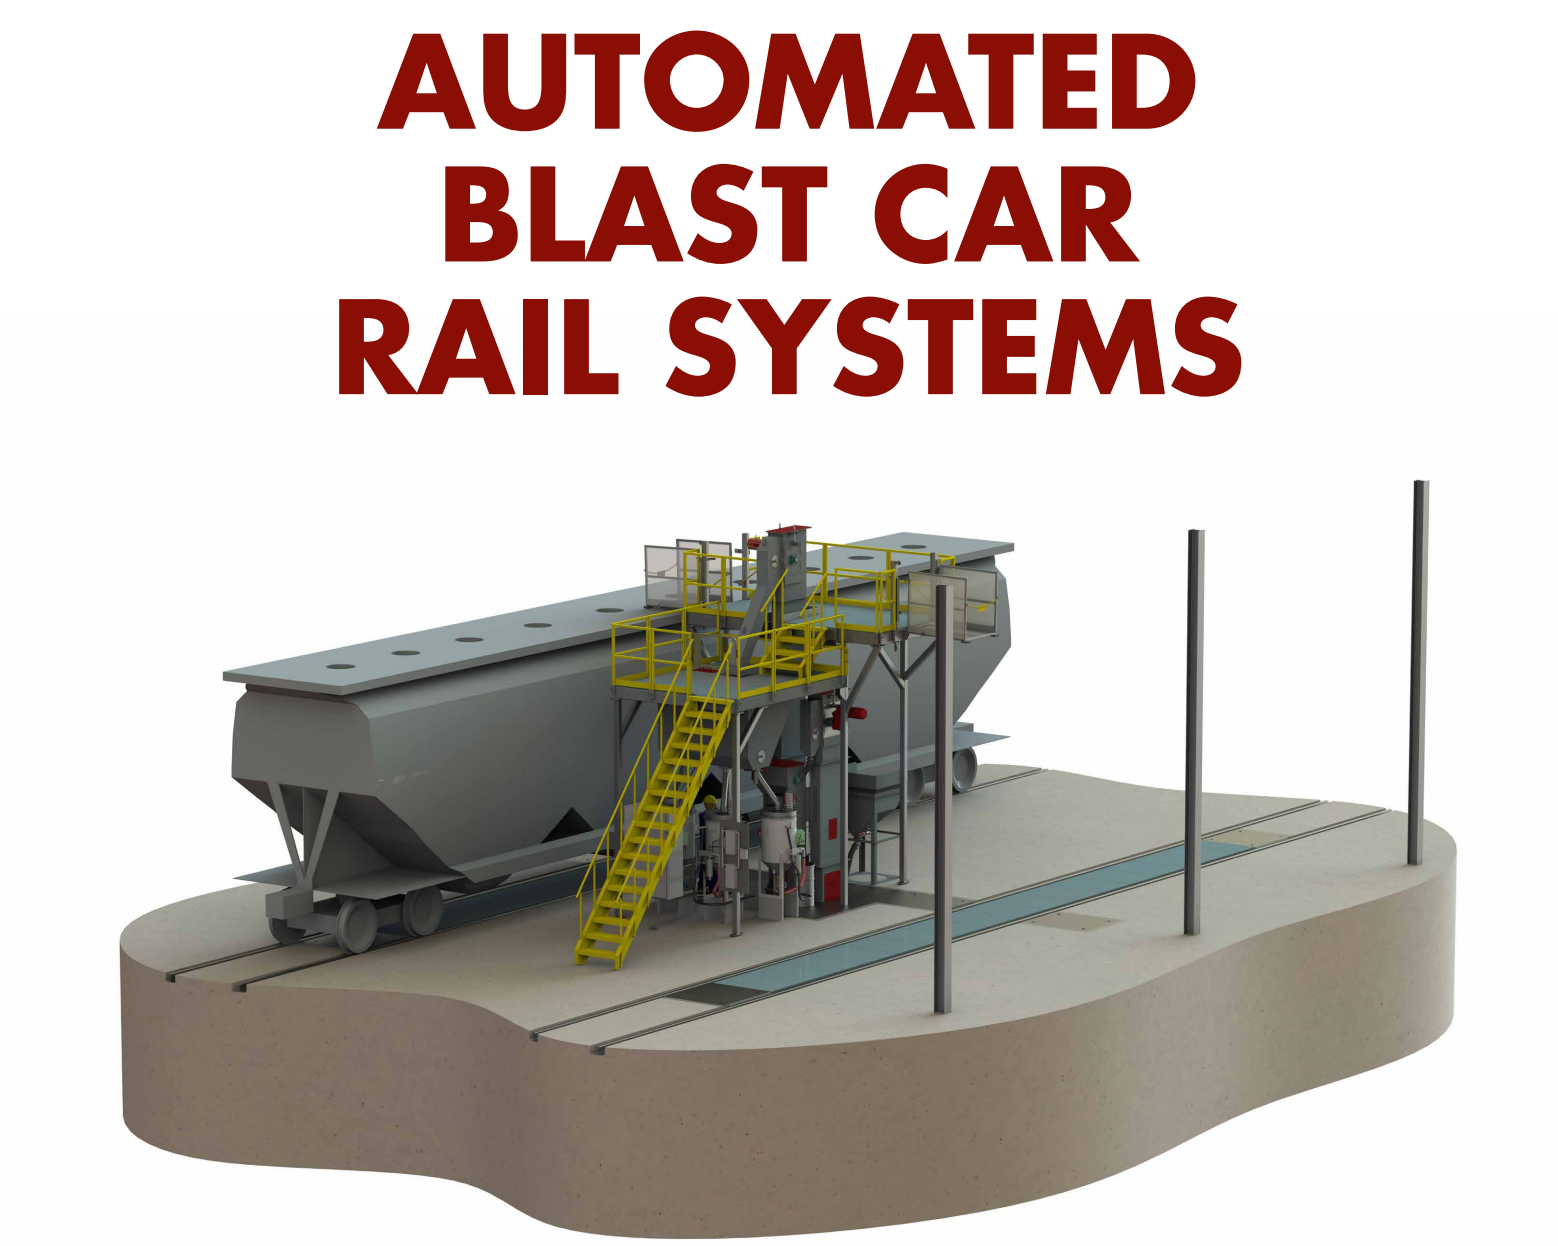 Automated Blast Systems for Railcars at the Railway Interchange - Blast Cleaning technologies